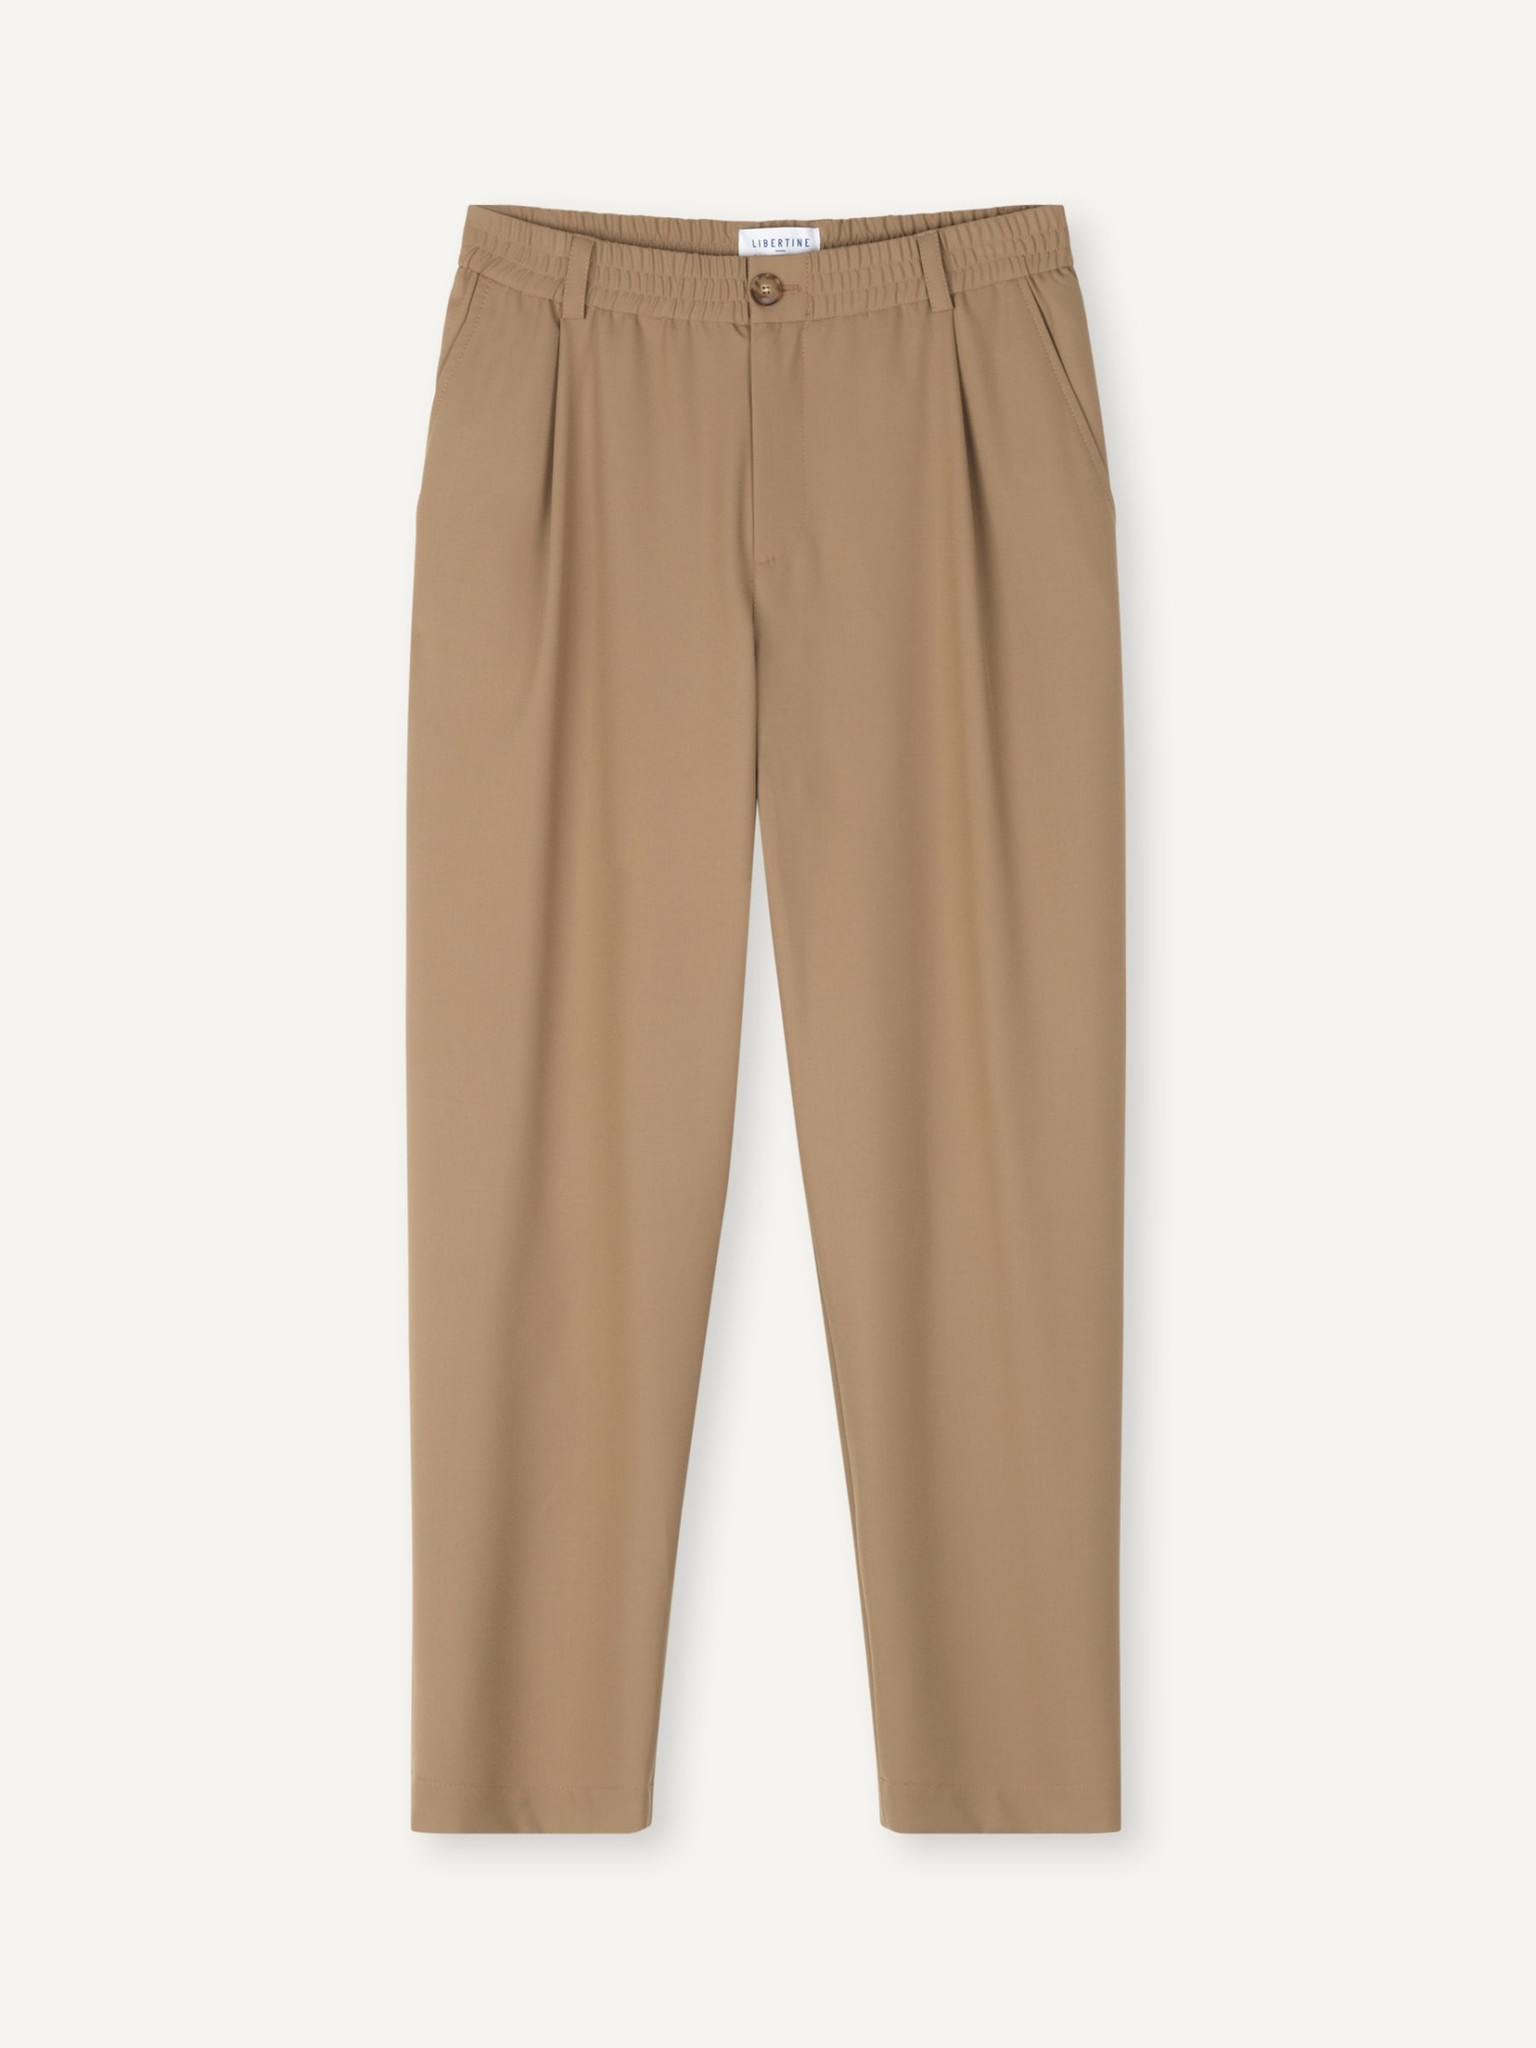 Smoke Loose Fit Pants Khaki-1